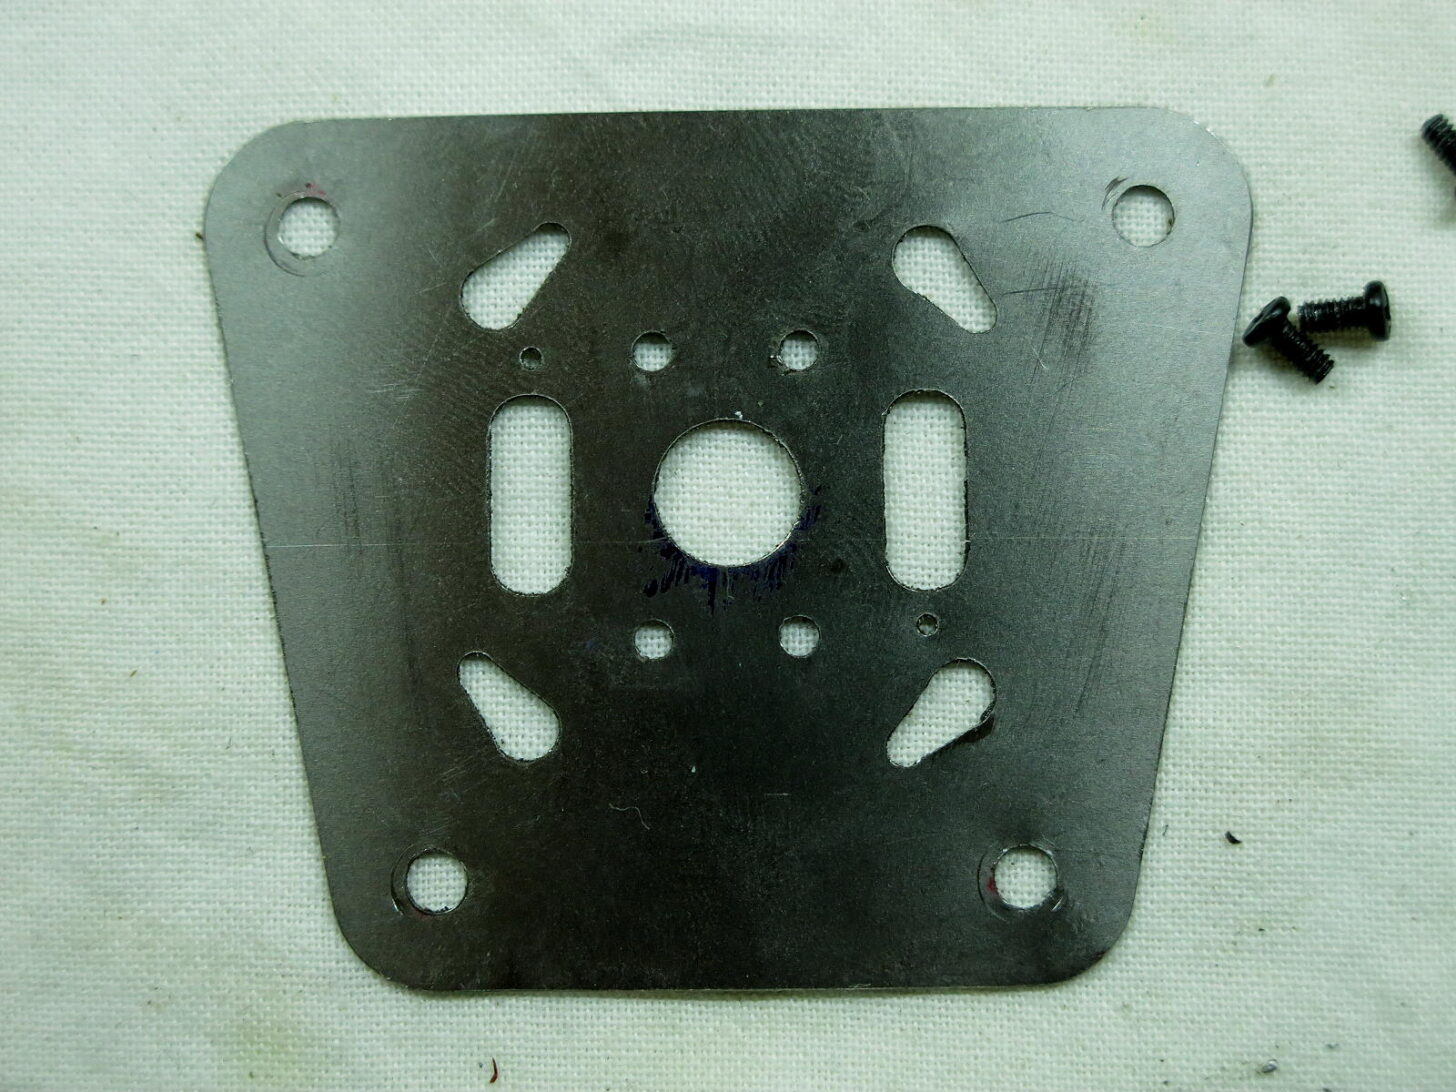 a stove baseplate with holes cut into it and a tapered shape